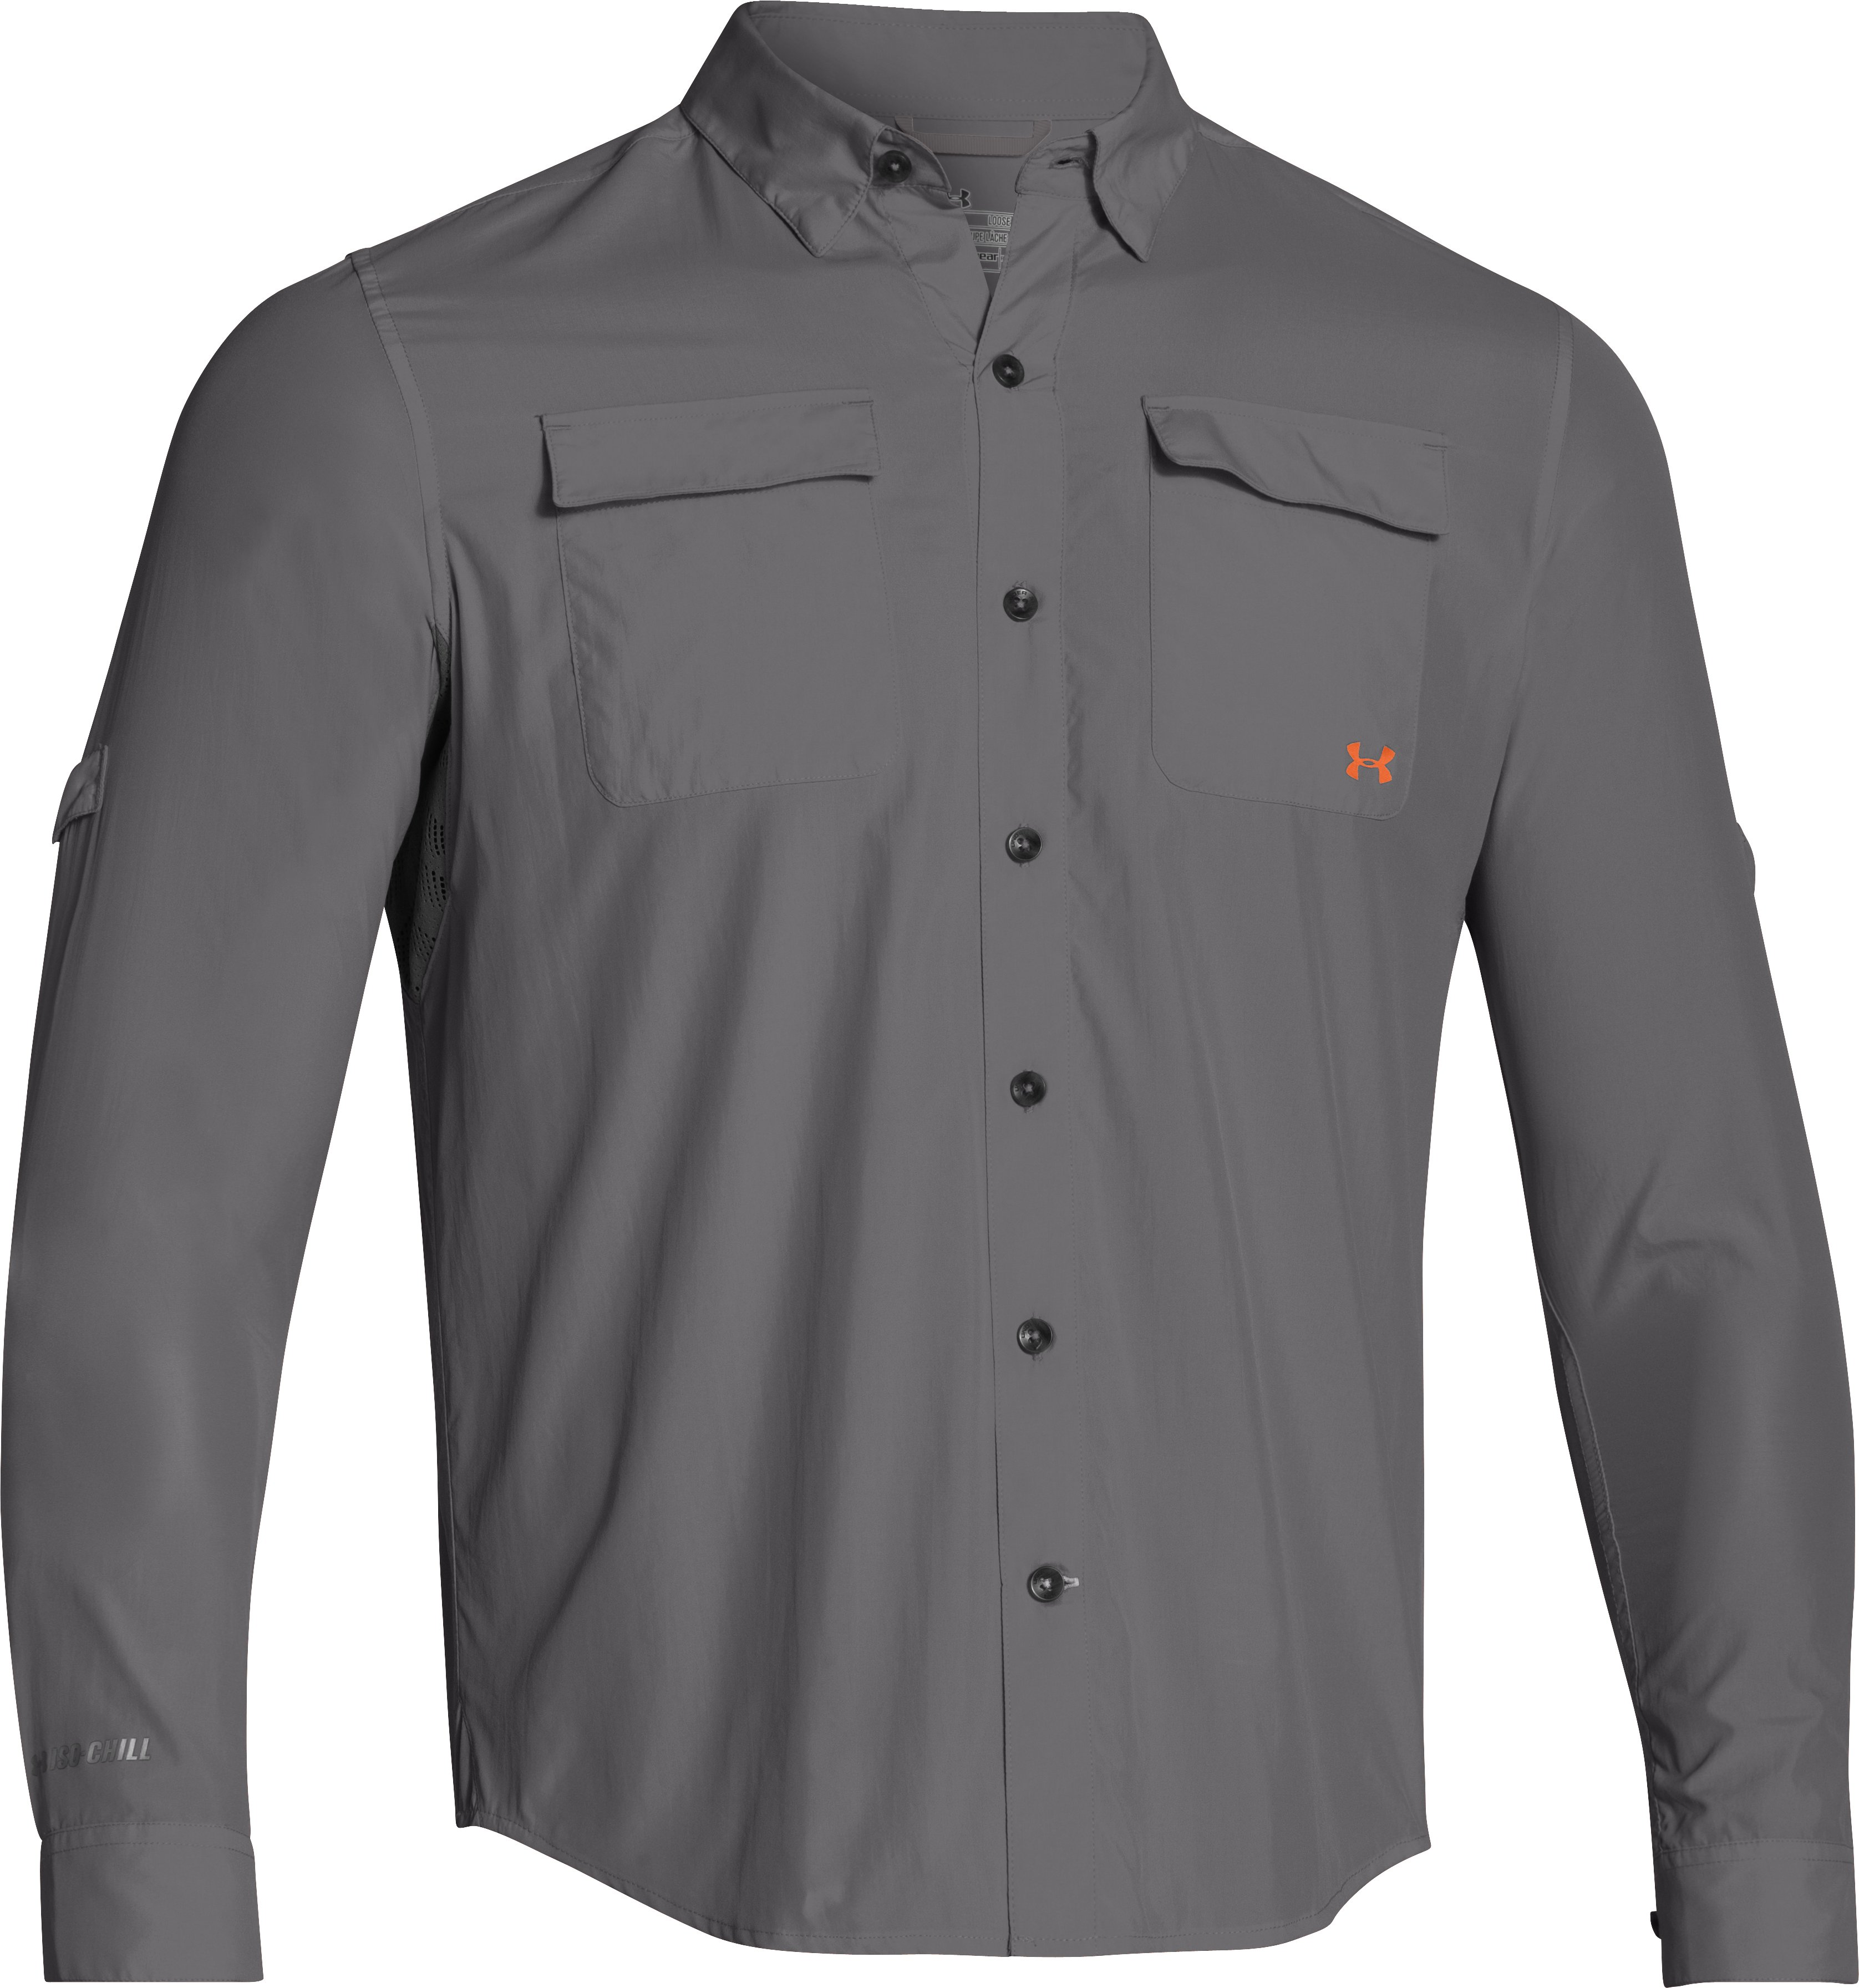 Men's UA Iso-Chill Flats Guide Long Sleeve Shirt, Graphite